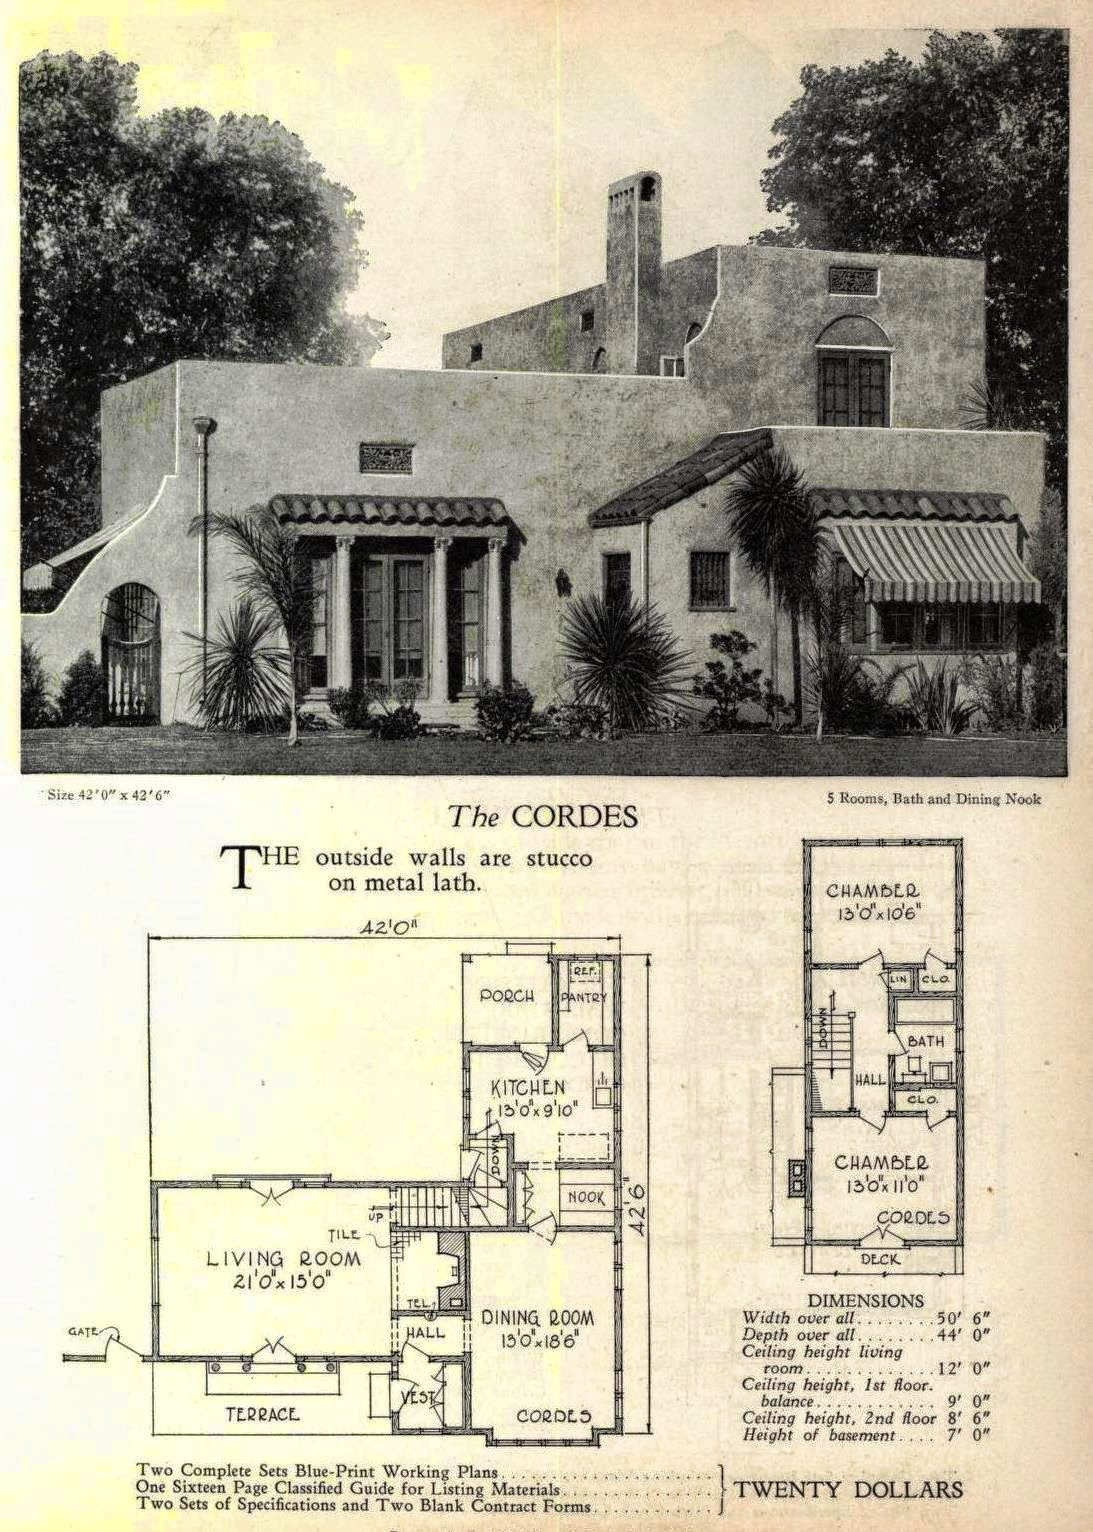 And yes even more art deco and moderne house plans